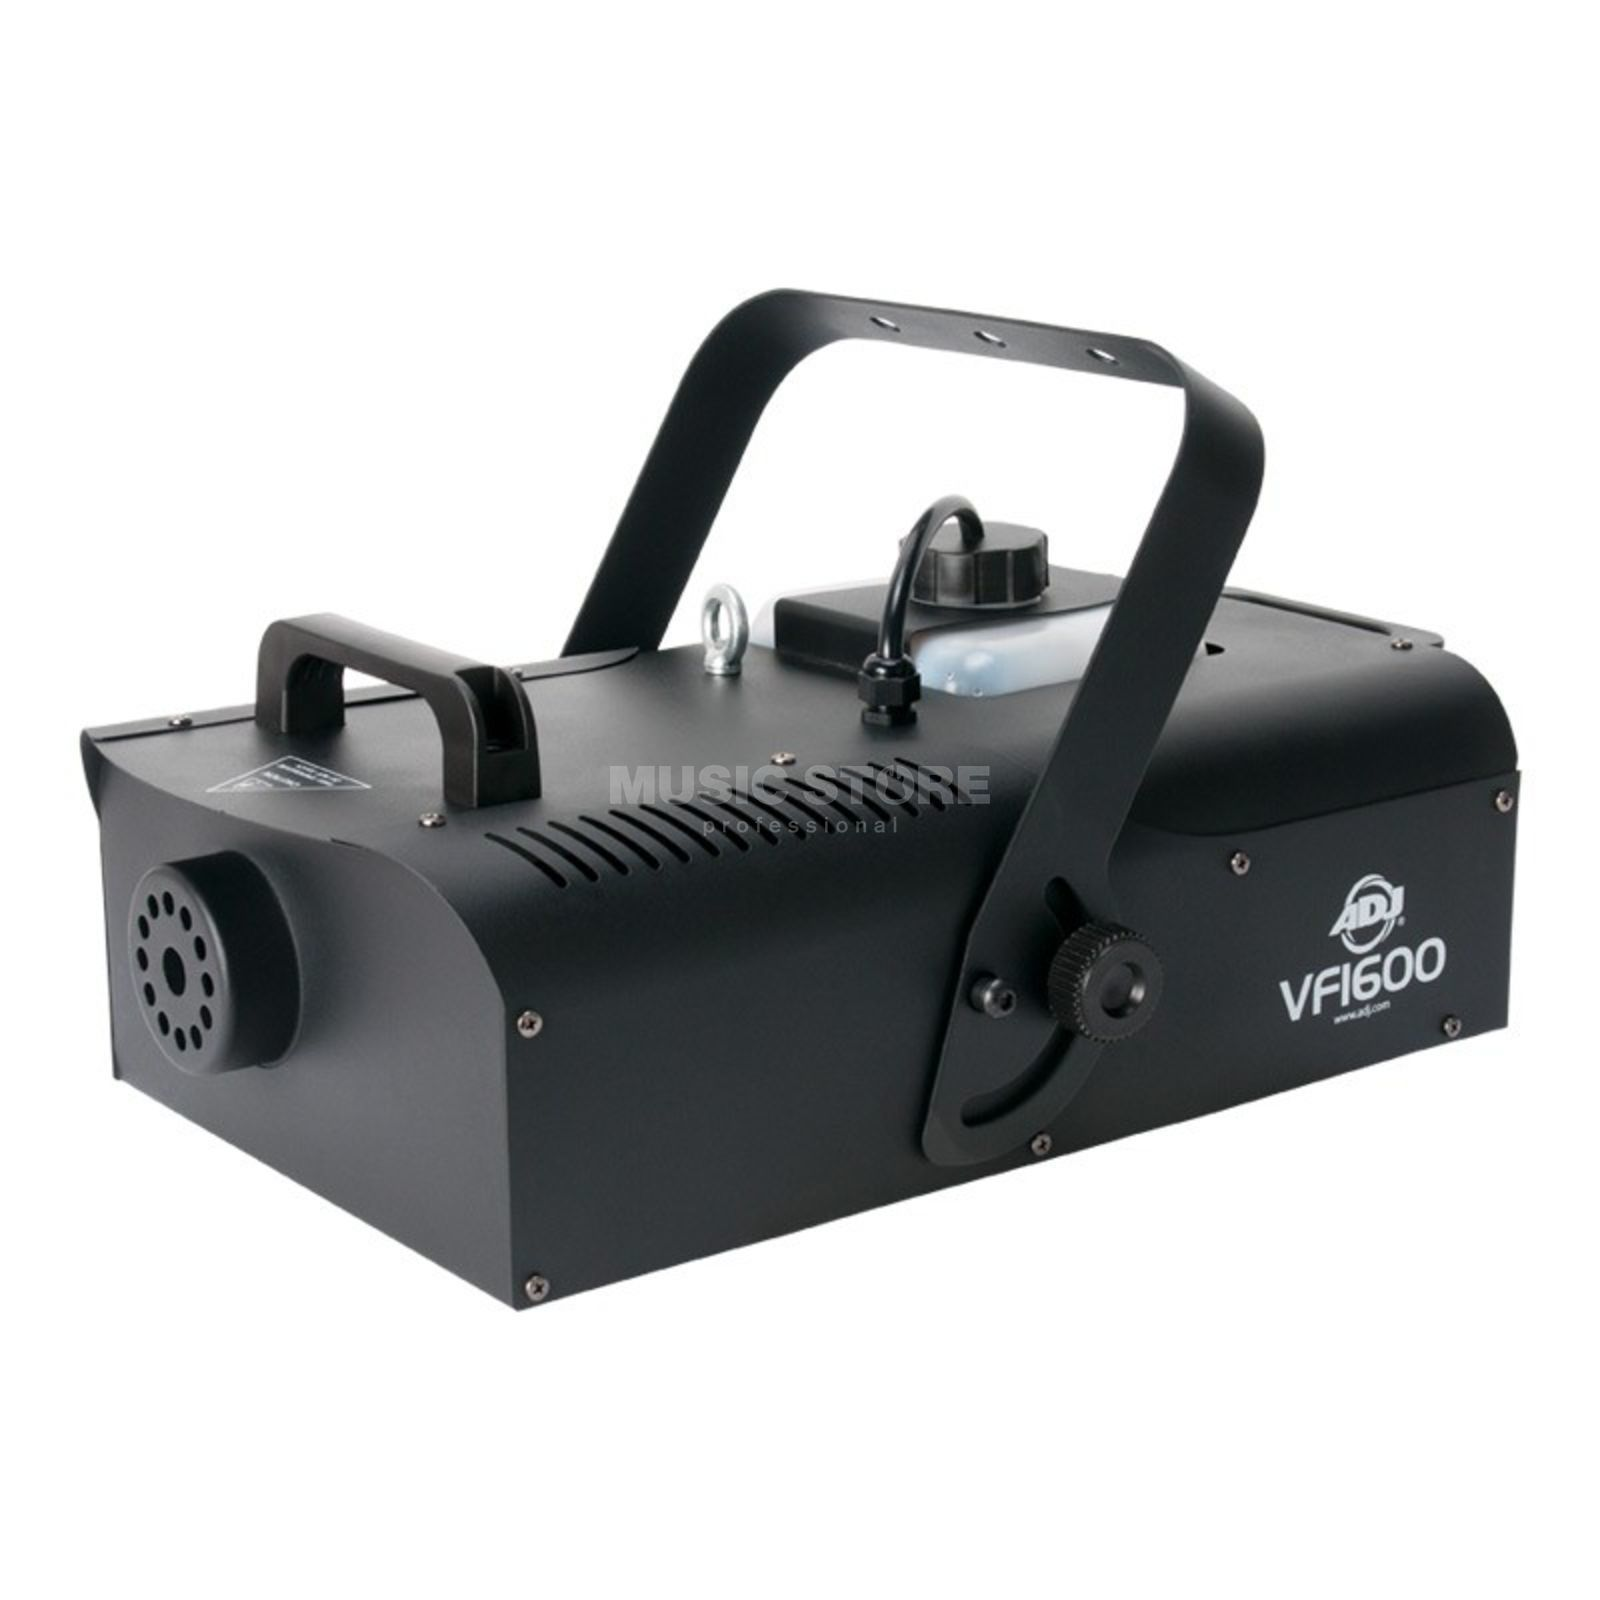 American DJ VF1600 Fog Machine with 1600 W Produktbillede